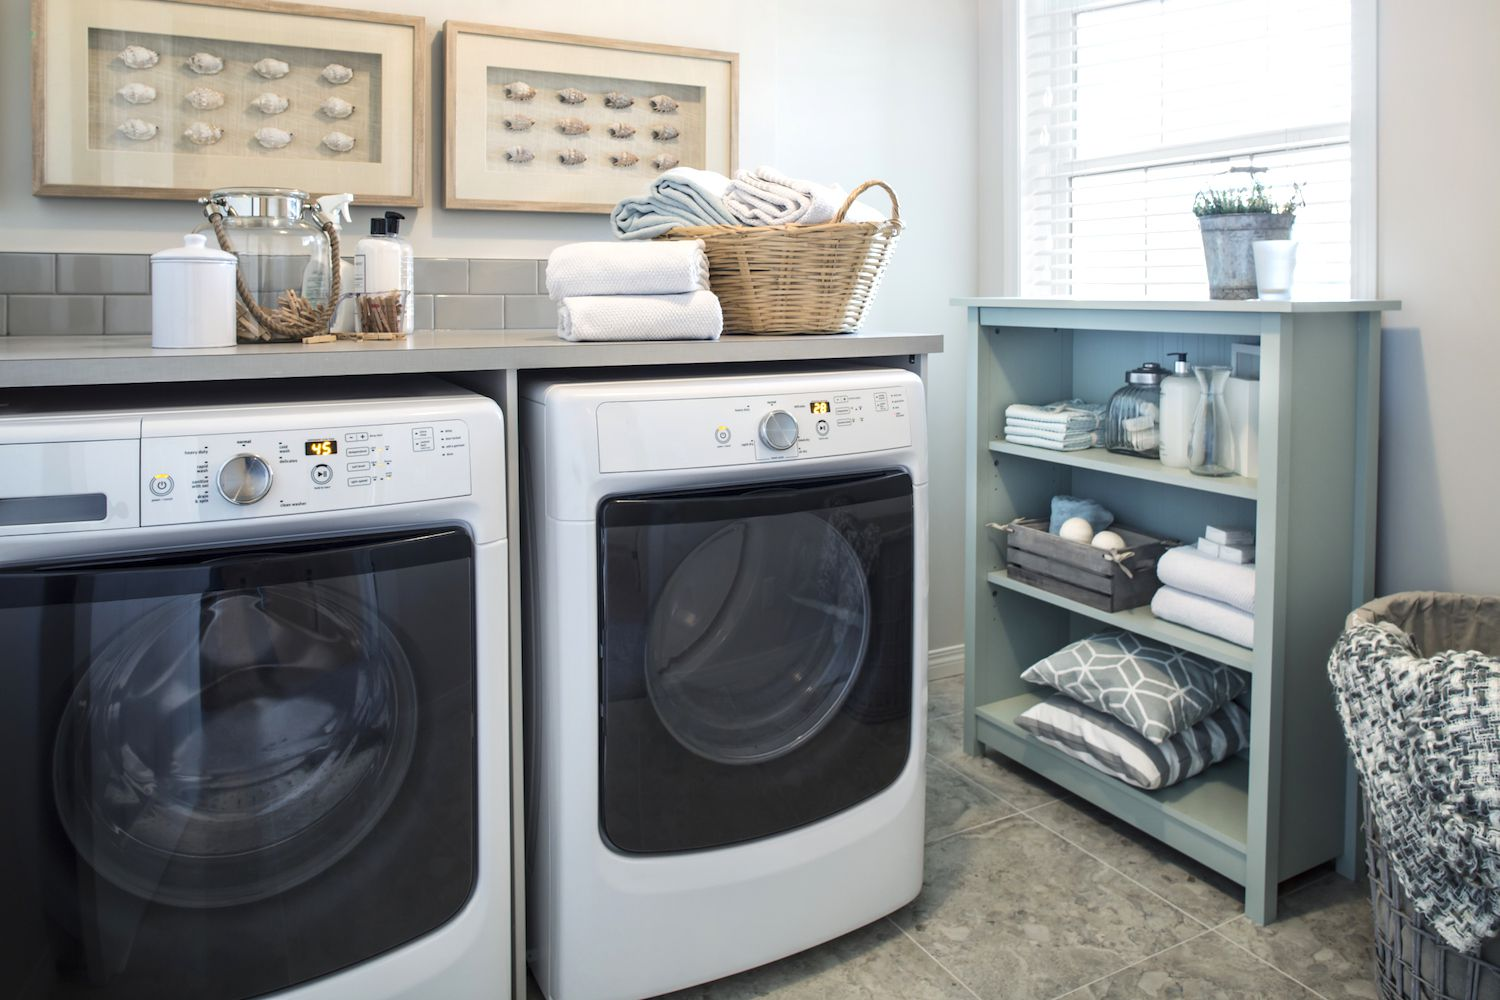 The 9 Best Washer Amp Dryer Sets Of 2021